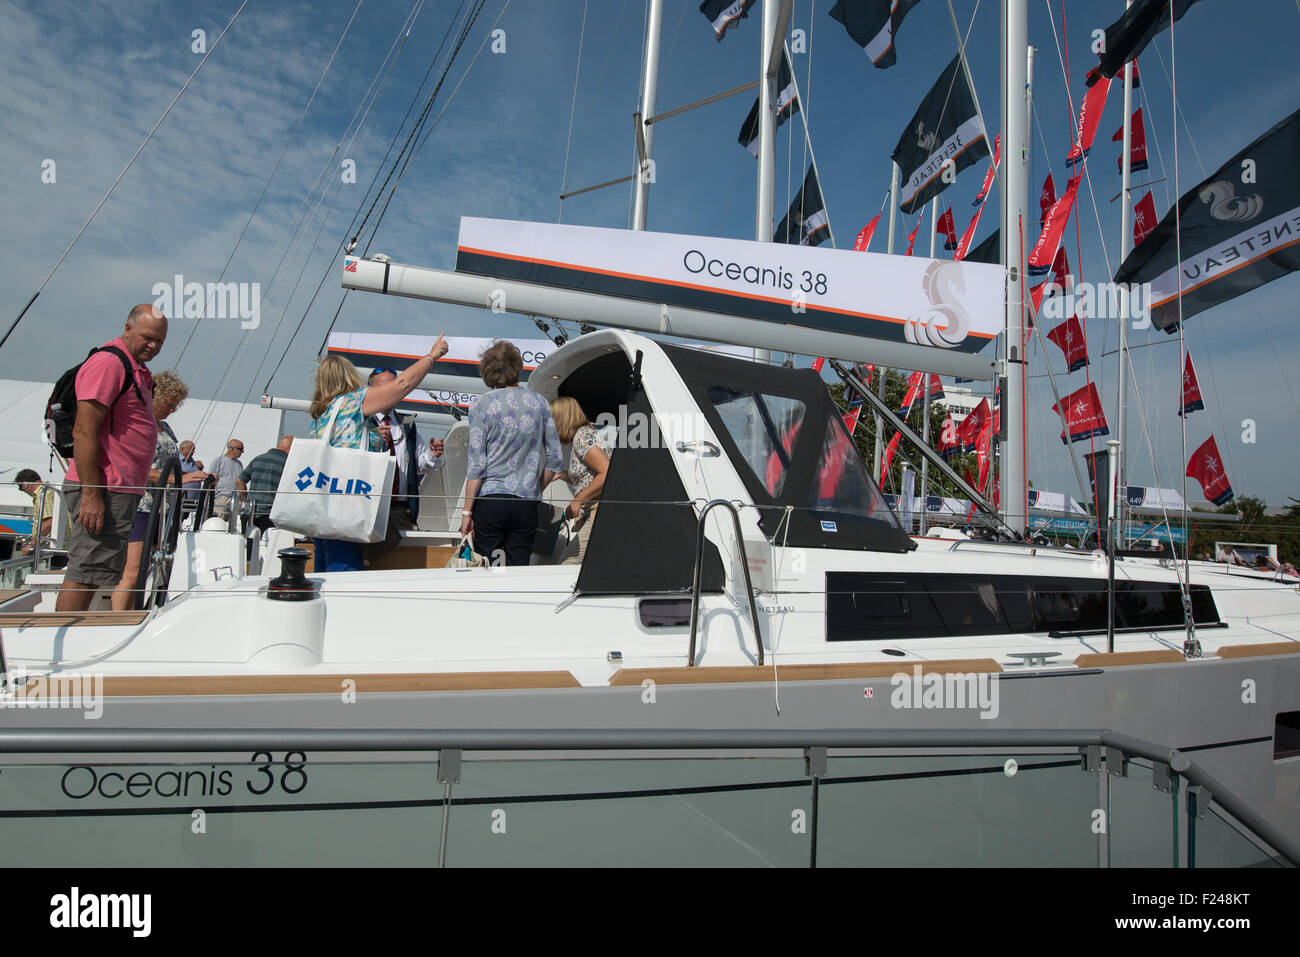 Southampton, UK. 11th September 2015. Southampton Boat Show 2015. Visitors on the Beneteau yacht stand look at an Stock Photo